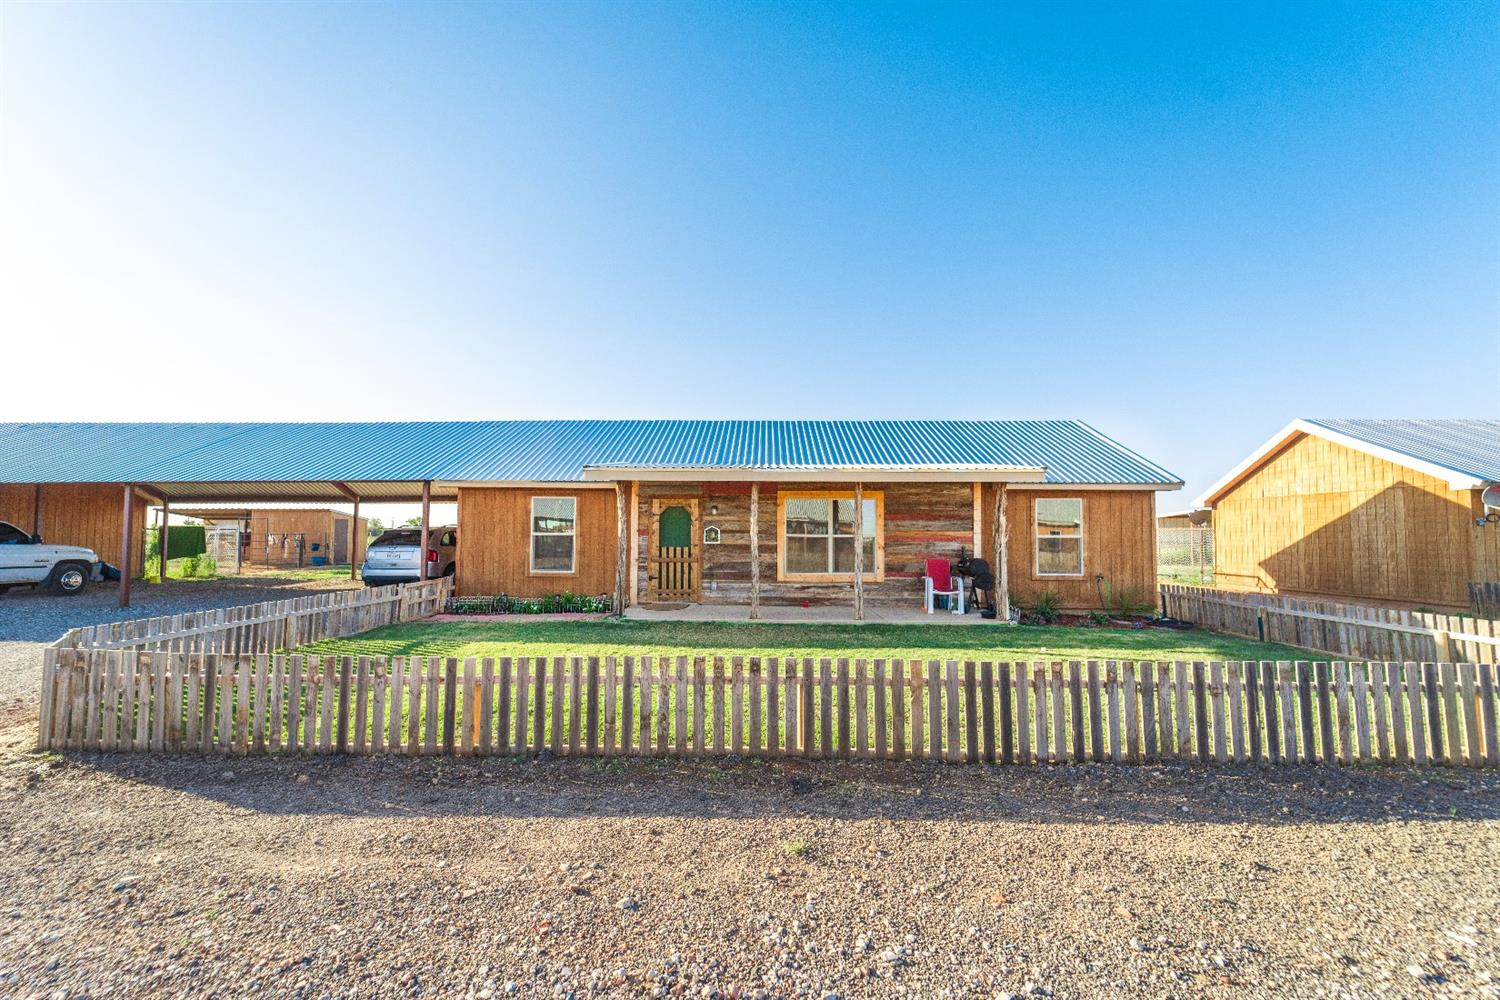 Fully Occupied very unique Investment property.  Features 12 units all with individual horse stalls, additional Main House, 40*60 Shop, and 6 additional horse stalls.    Great Investment Opportunity for Investors who love cash flow!